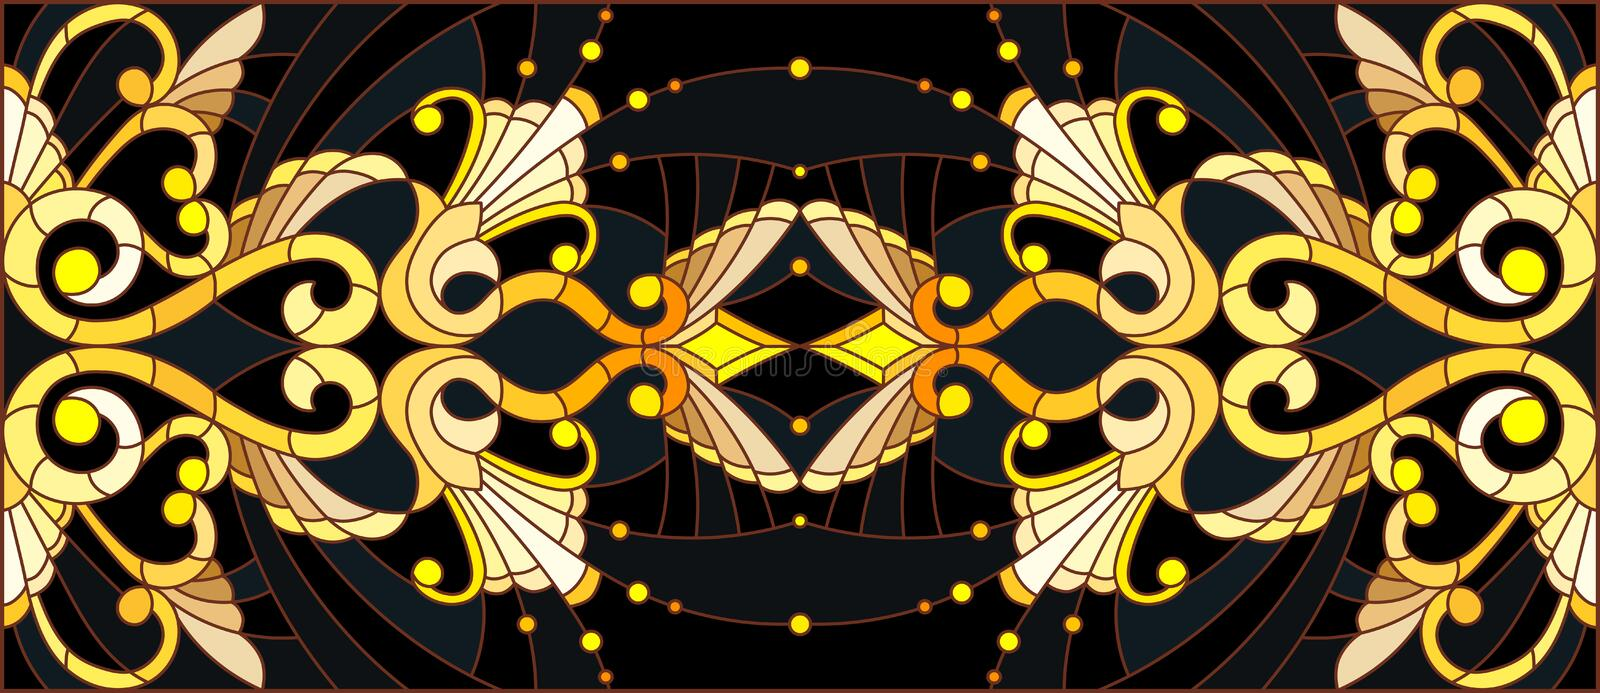 Stained glass illustration with  floral ornament ,imitation gold on dark background with swirls and floral motifs. Illustration in stained glass style with stock illustration